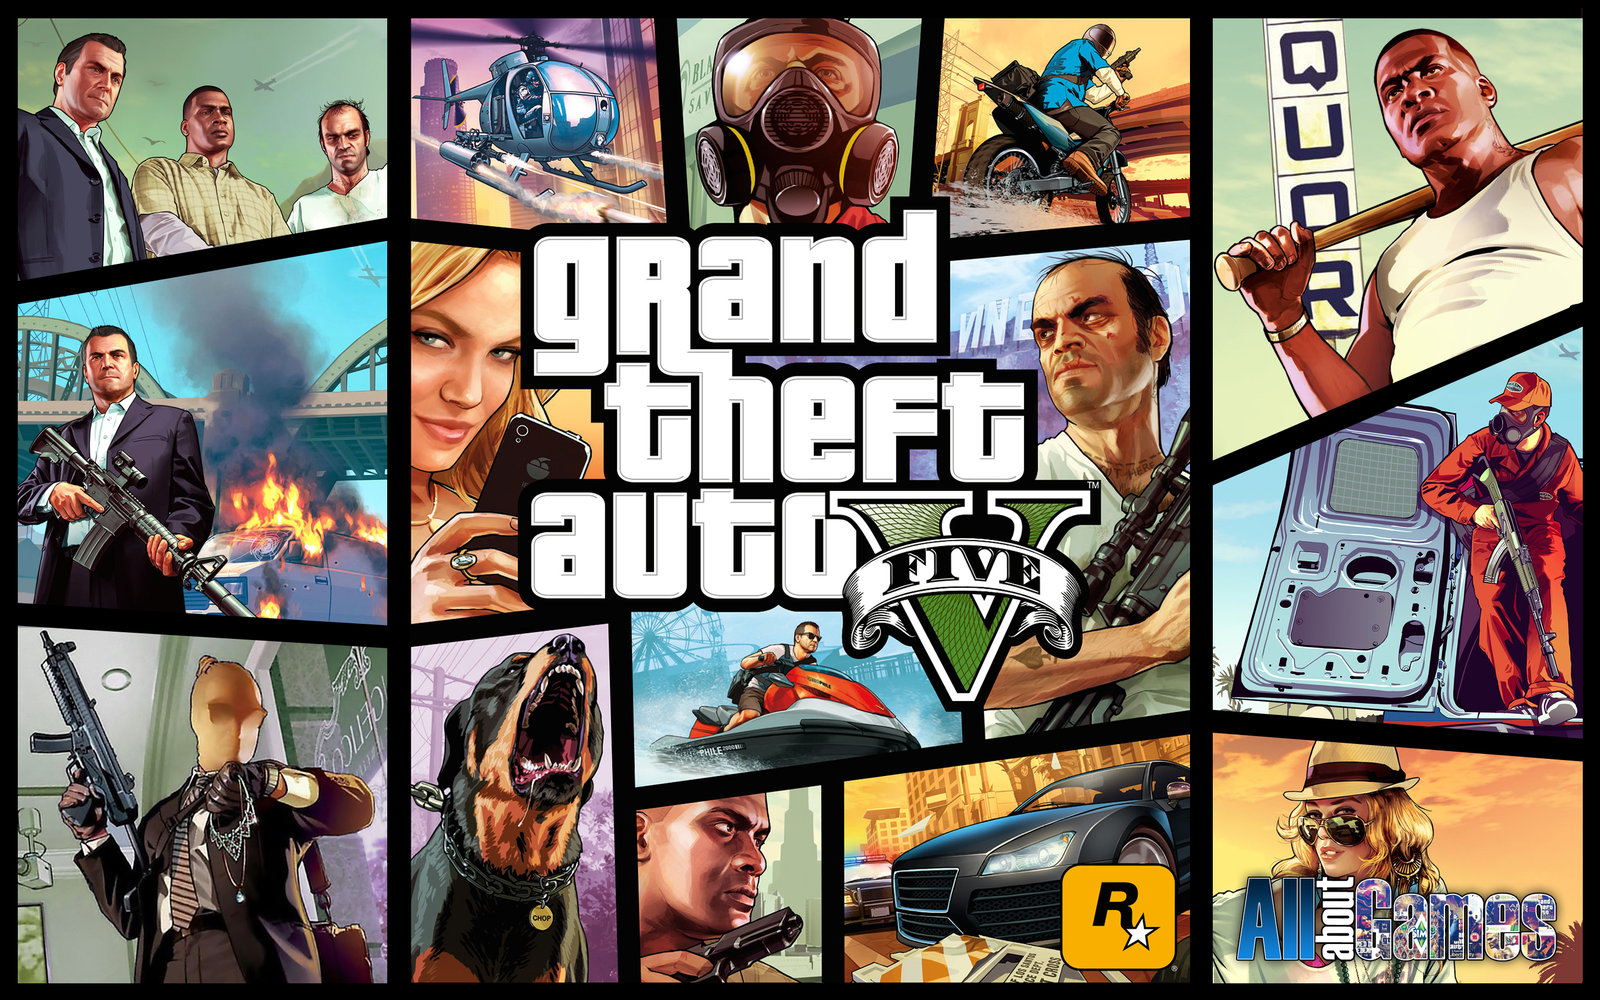 Gta 5 Wallpaper Hd 1080p